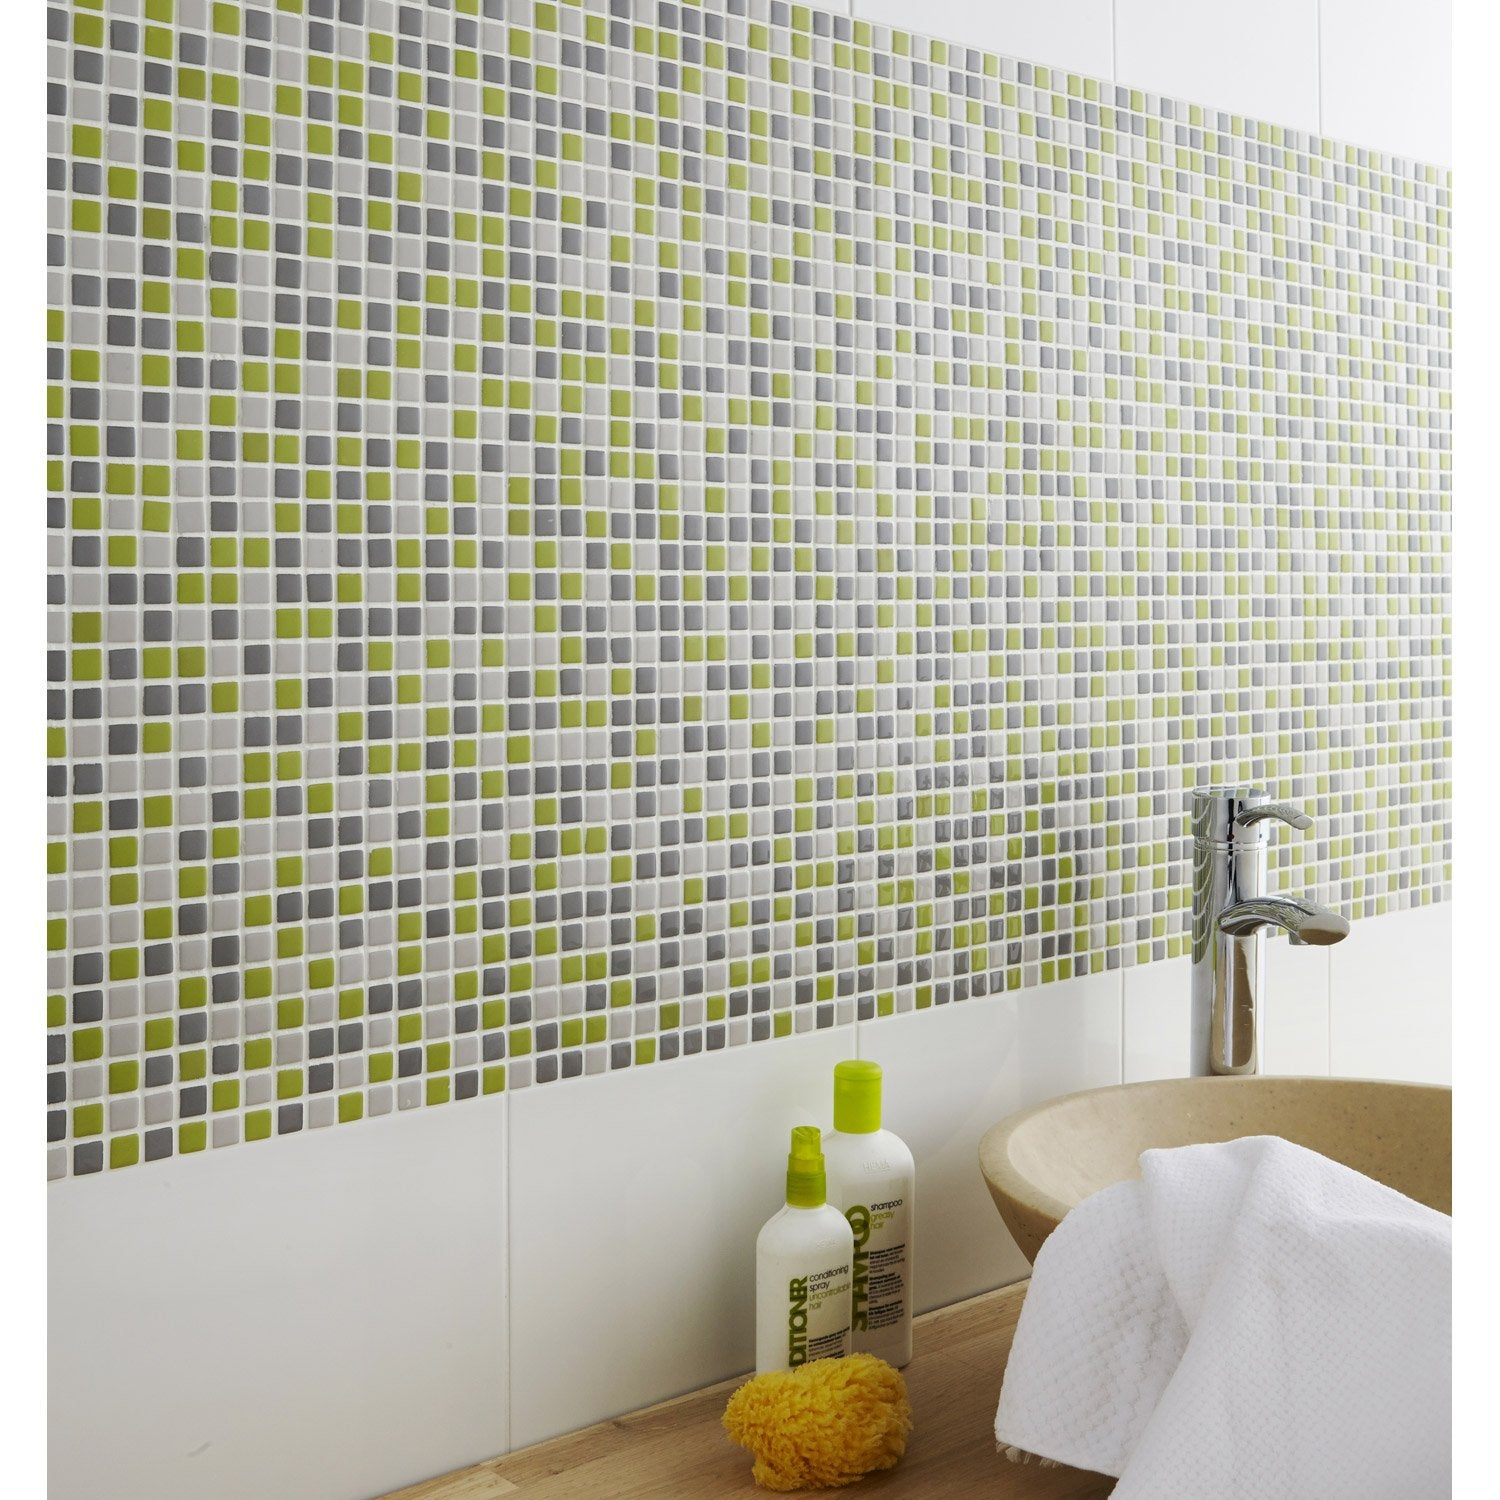 Mosa que pop gris et vert cm leroy merlin for Mosaique travertin leroy merlin